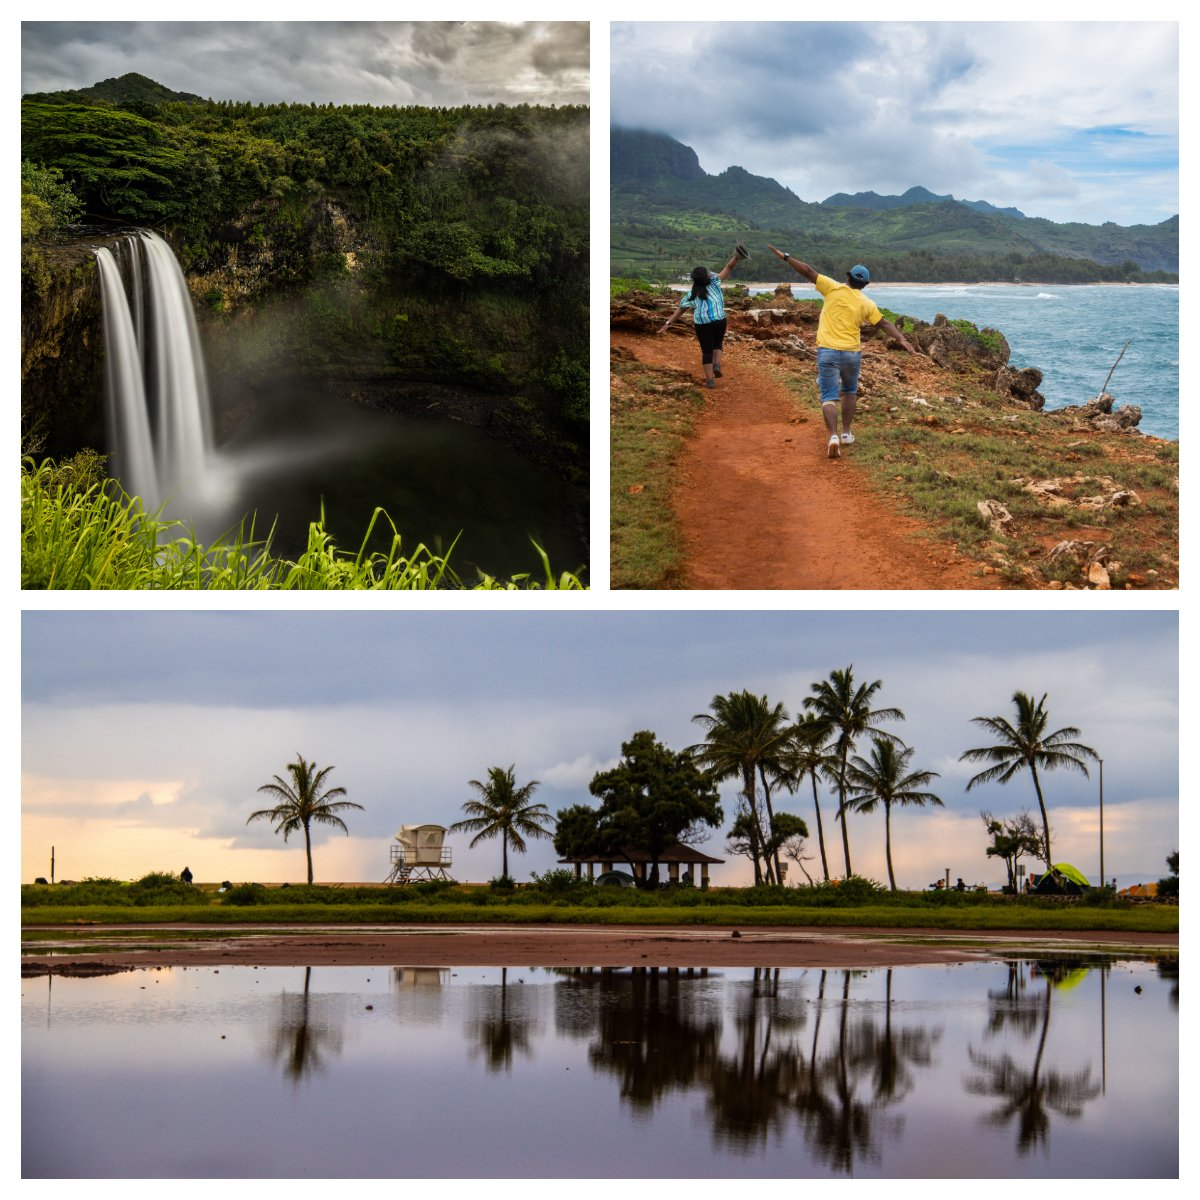 Salt pond beach, wailua falls and other list of things to do in Kauai by Travel Anubhav